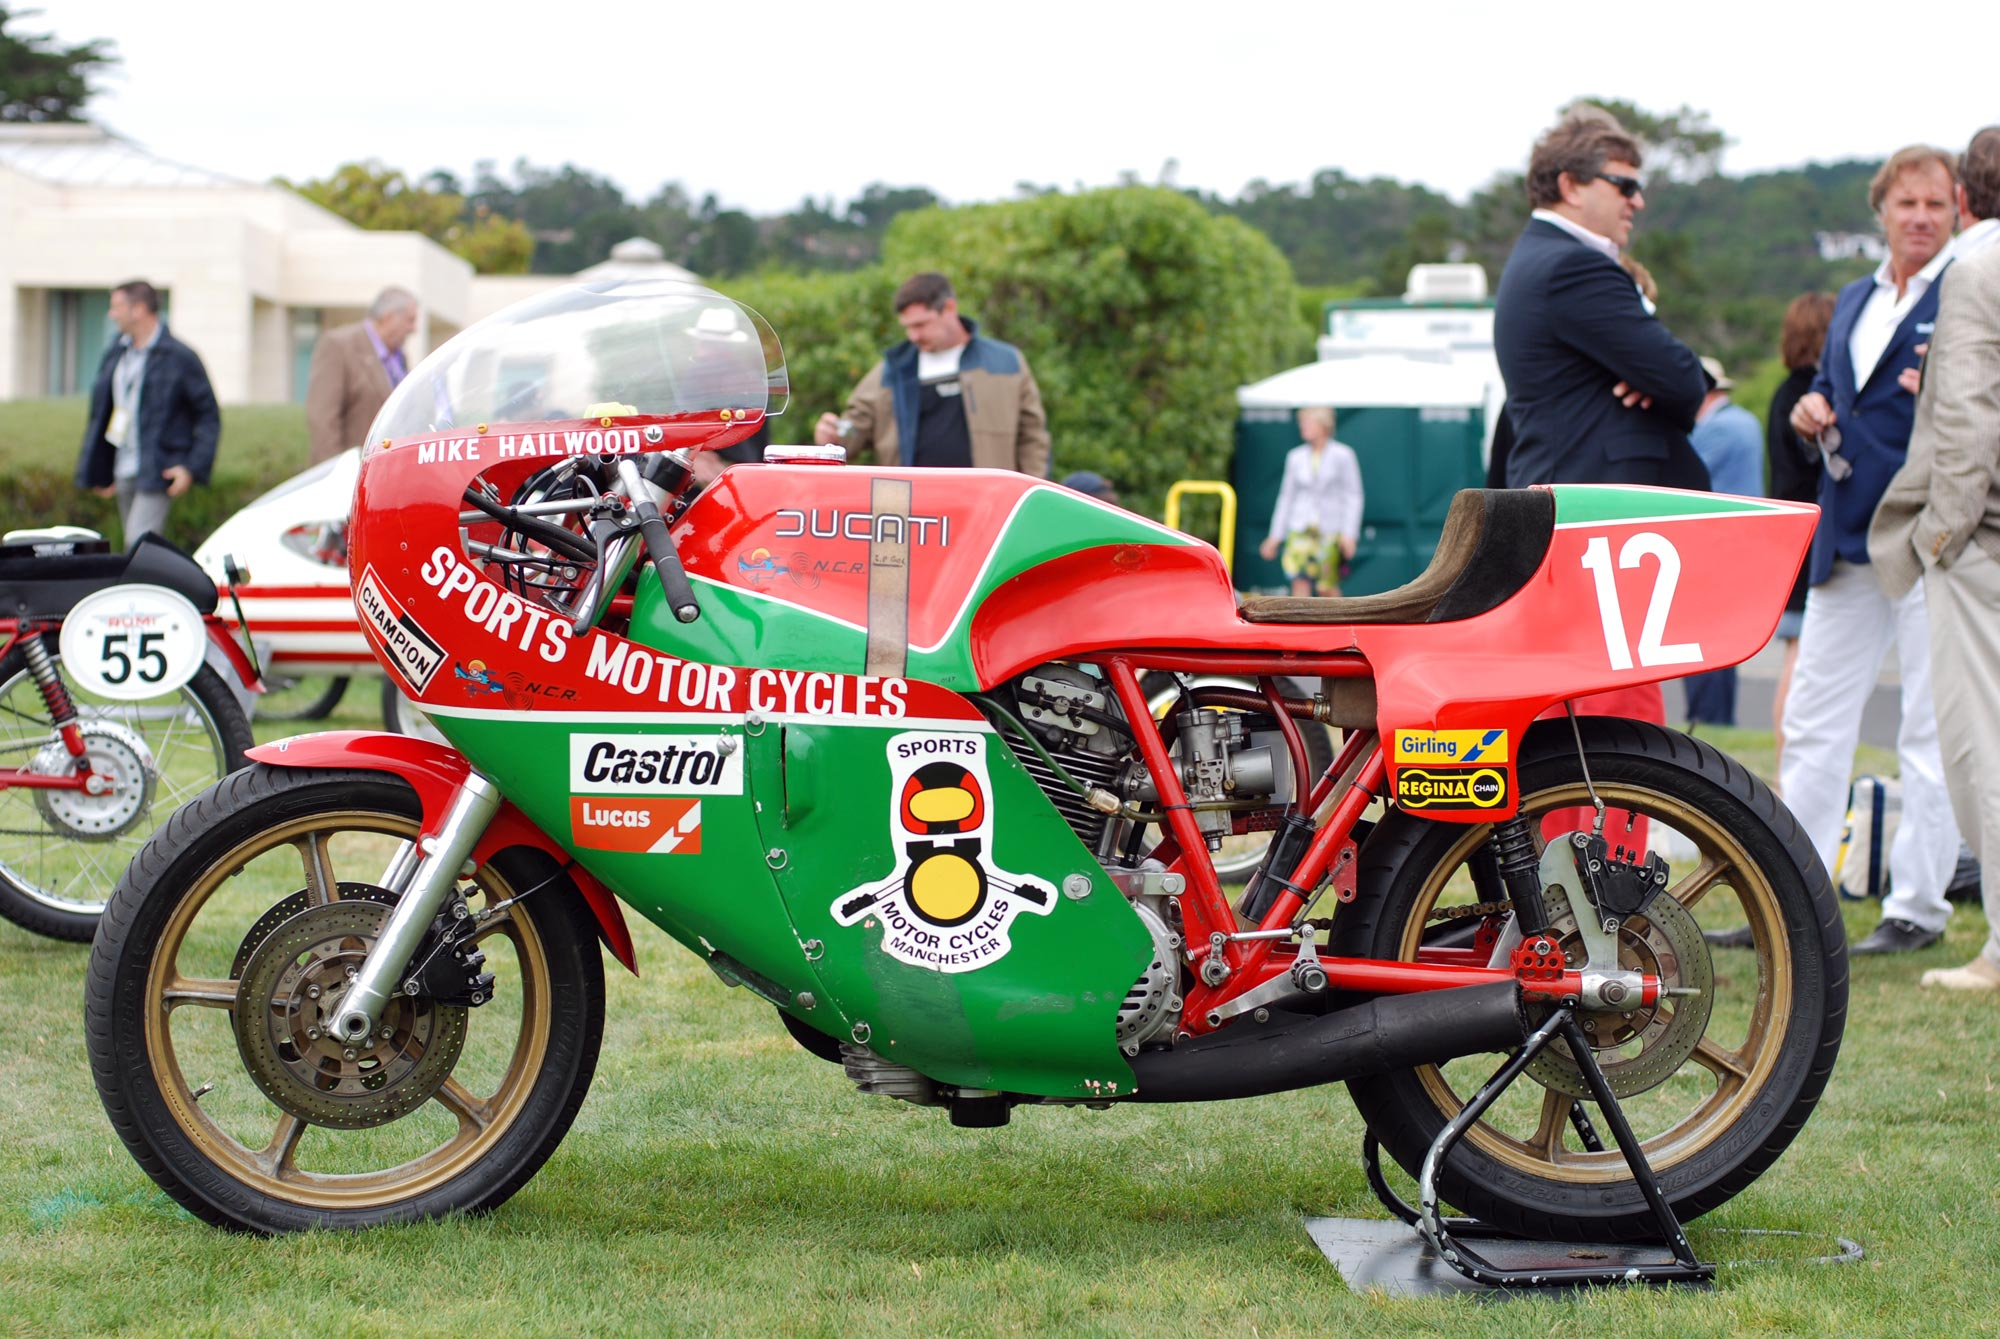 http://www.asphaltandrubber.com/wp-content/gallery/1978-ducati-900-ncr-mike-hailwood-race-bike-at-the-pebble-beach-concours-delegance/1978-ducati-900-ncr-mike-hailwood-pebble-beach-1.jpg